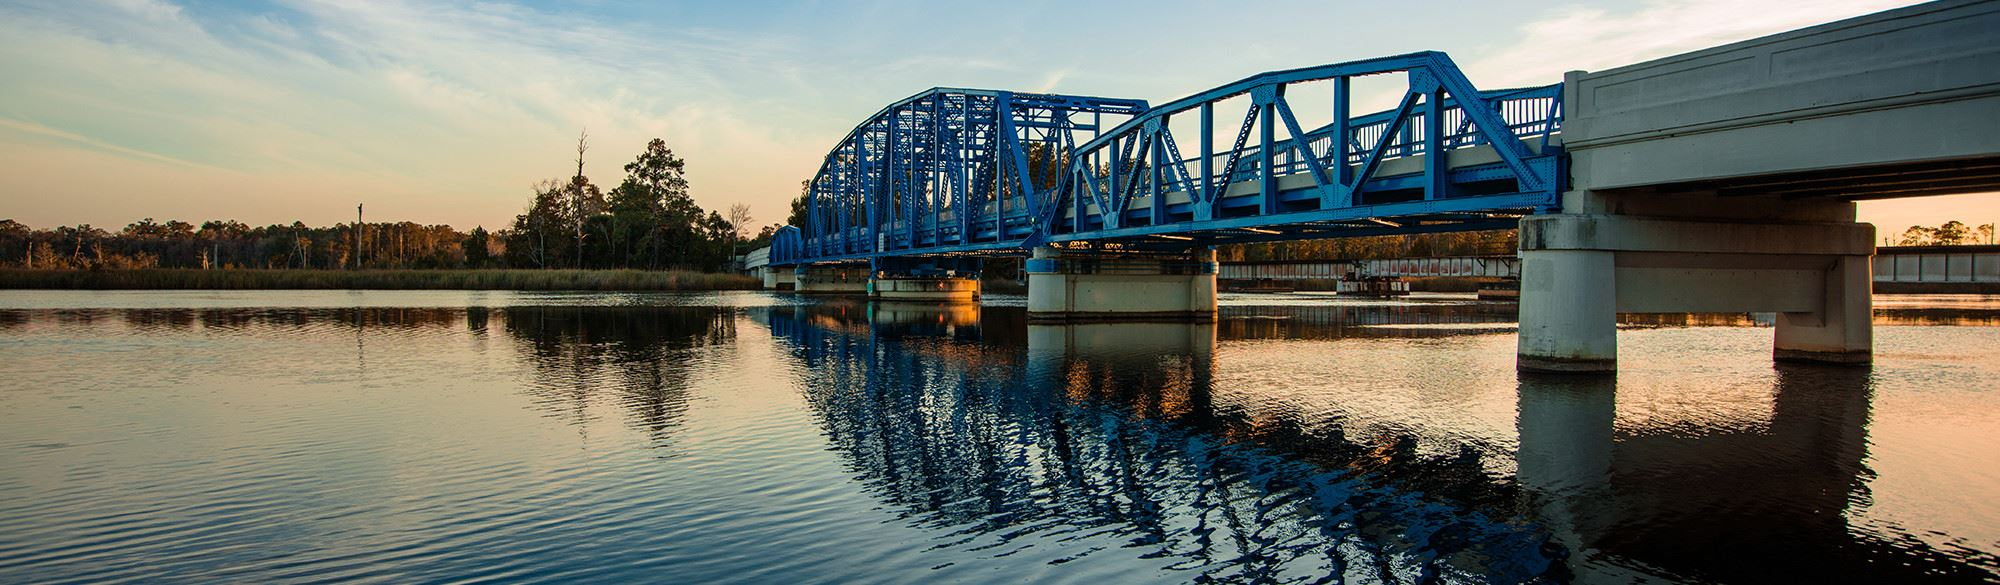 Blue Bridge Kingsland over water at sunset